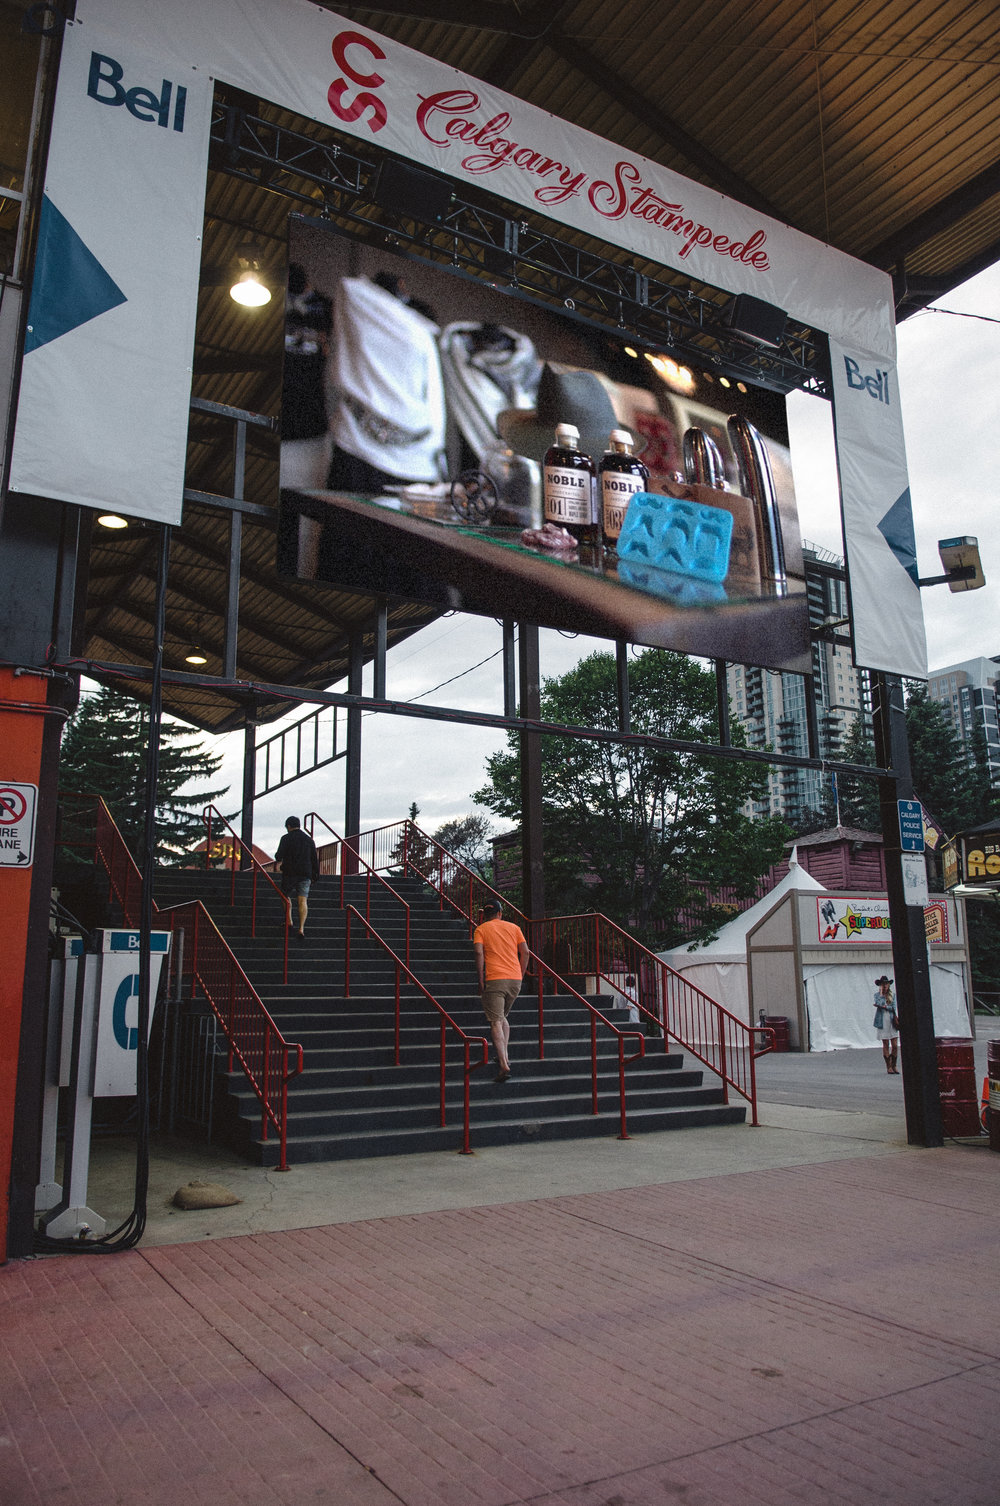 Superscreen Spot - A commercial was also produced to promote the collection on the Stampede grounds. The goal was to visually standout from traditional Stampede souvenirs and merchandise; as well as the traditional visuals associated with Stampede advertising on the grounds.